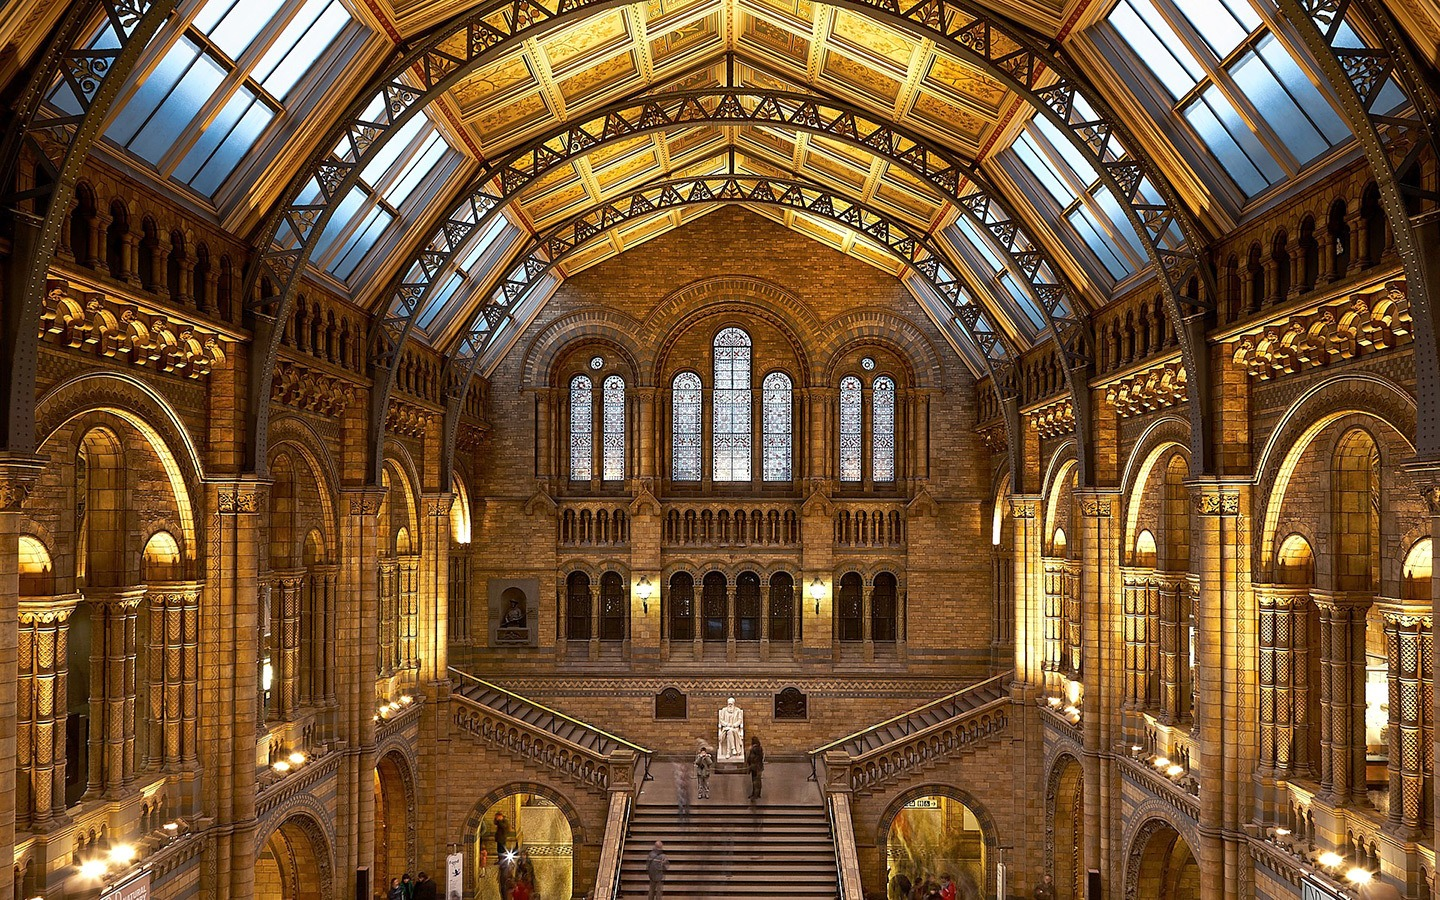 The main hall at the Natural History Museum, London